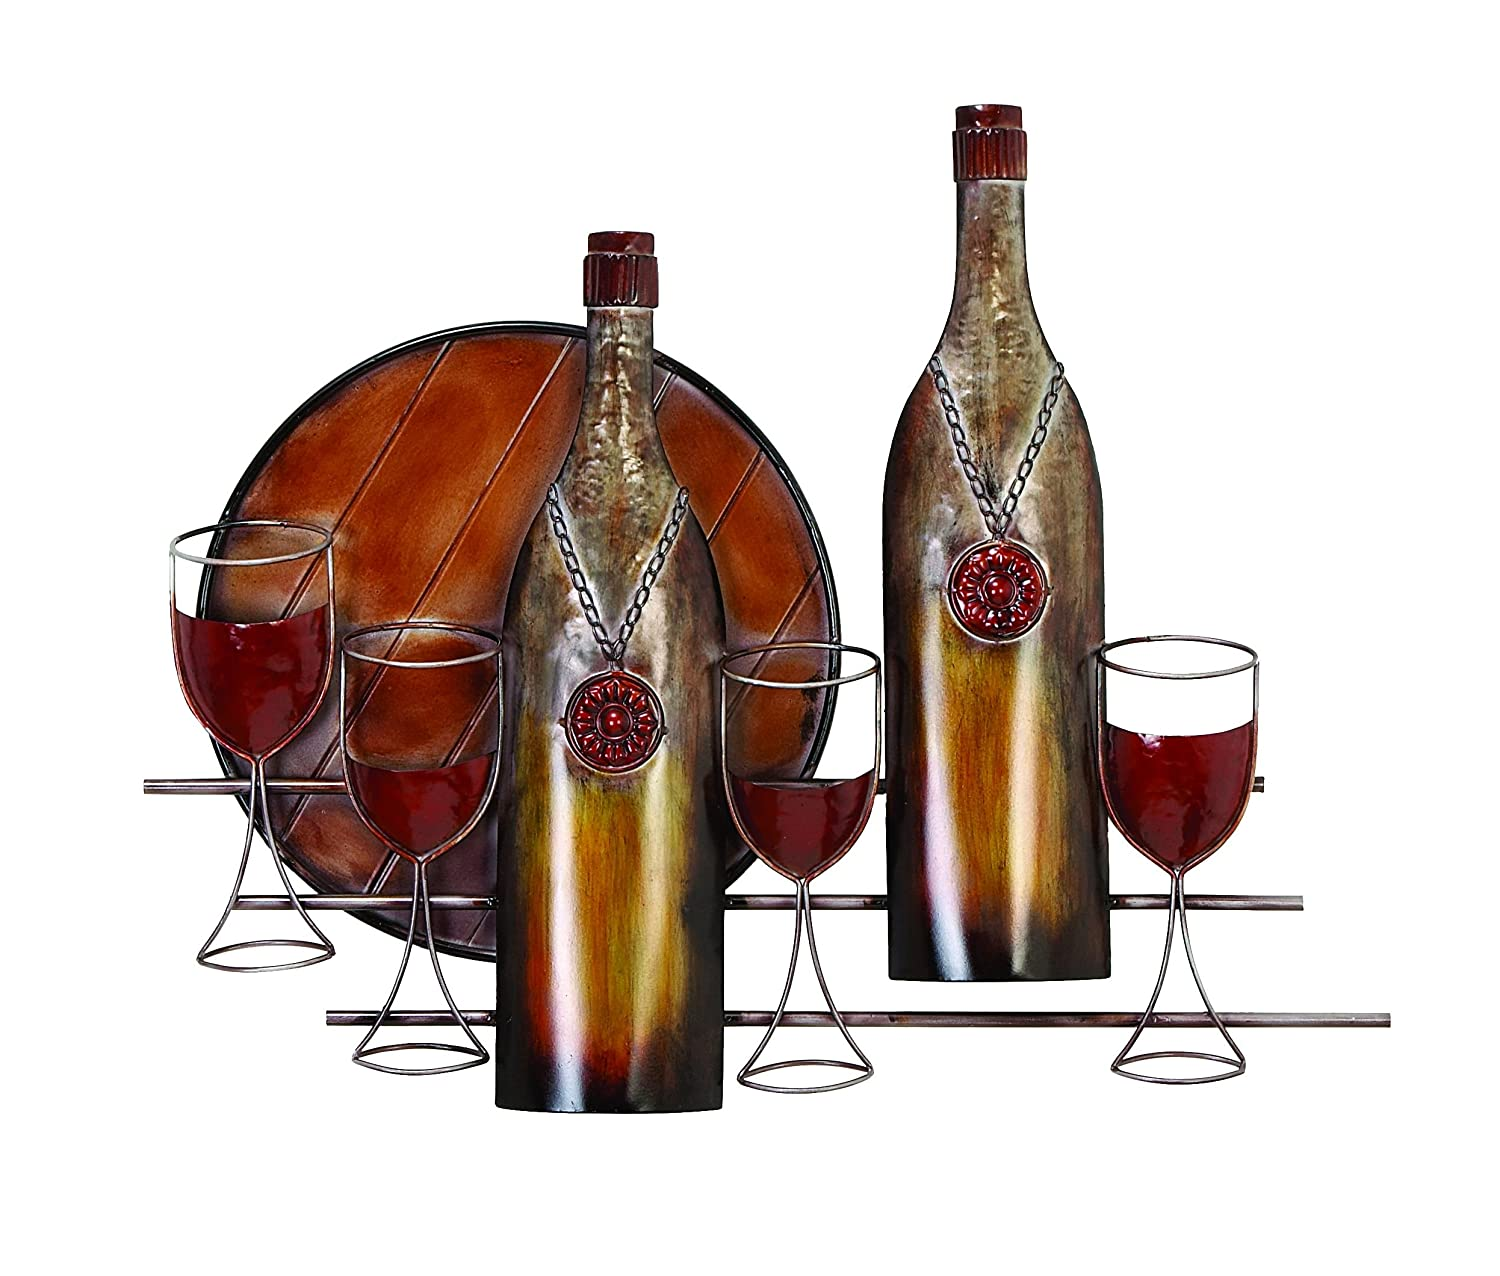 Metal decorative modern wall art wine bottle amp glasses Metal home decor